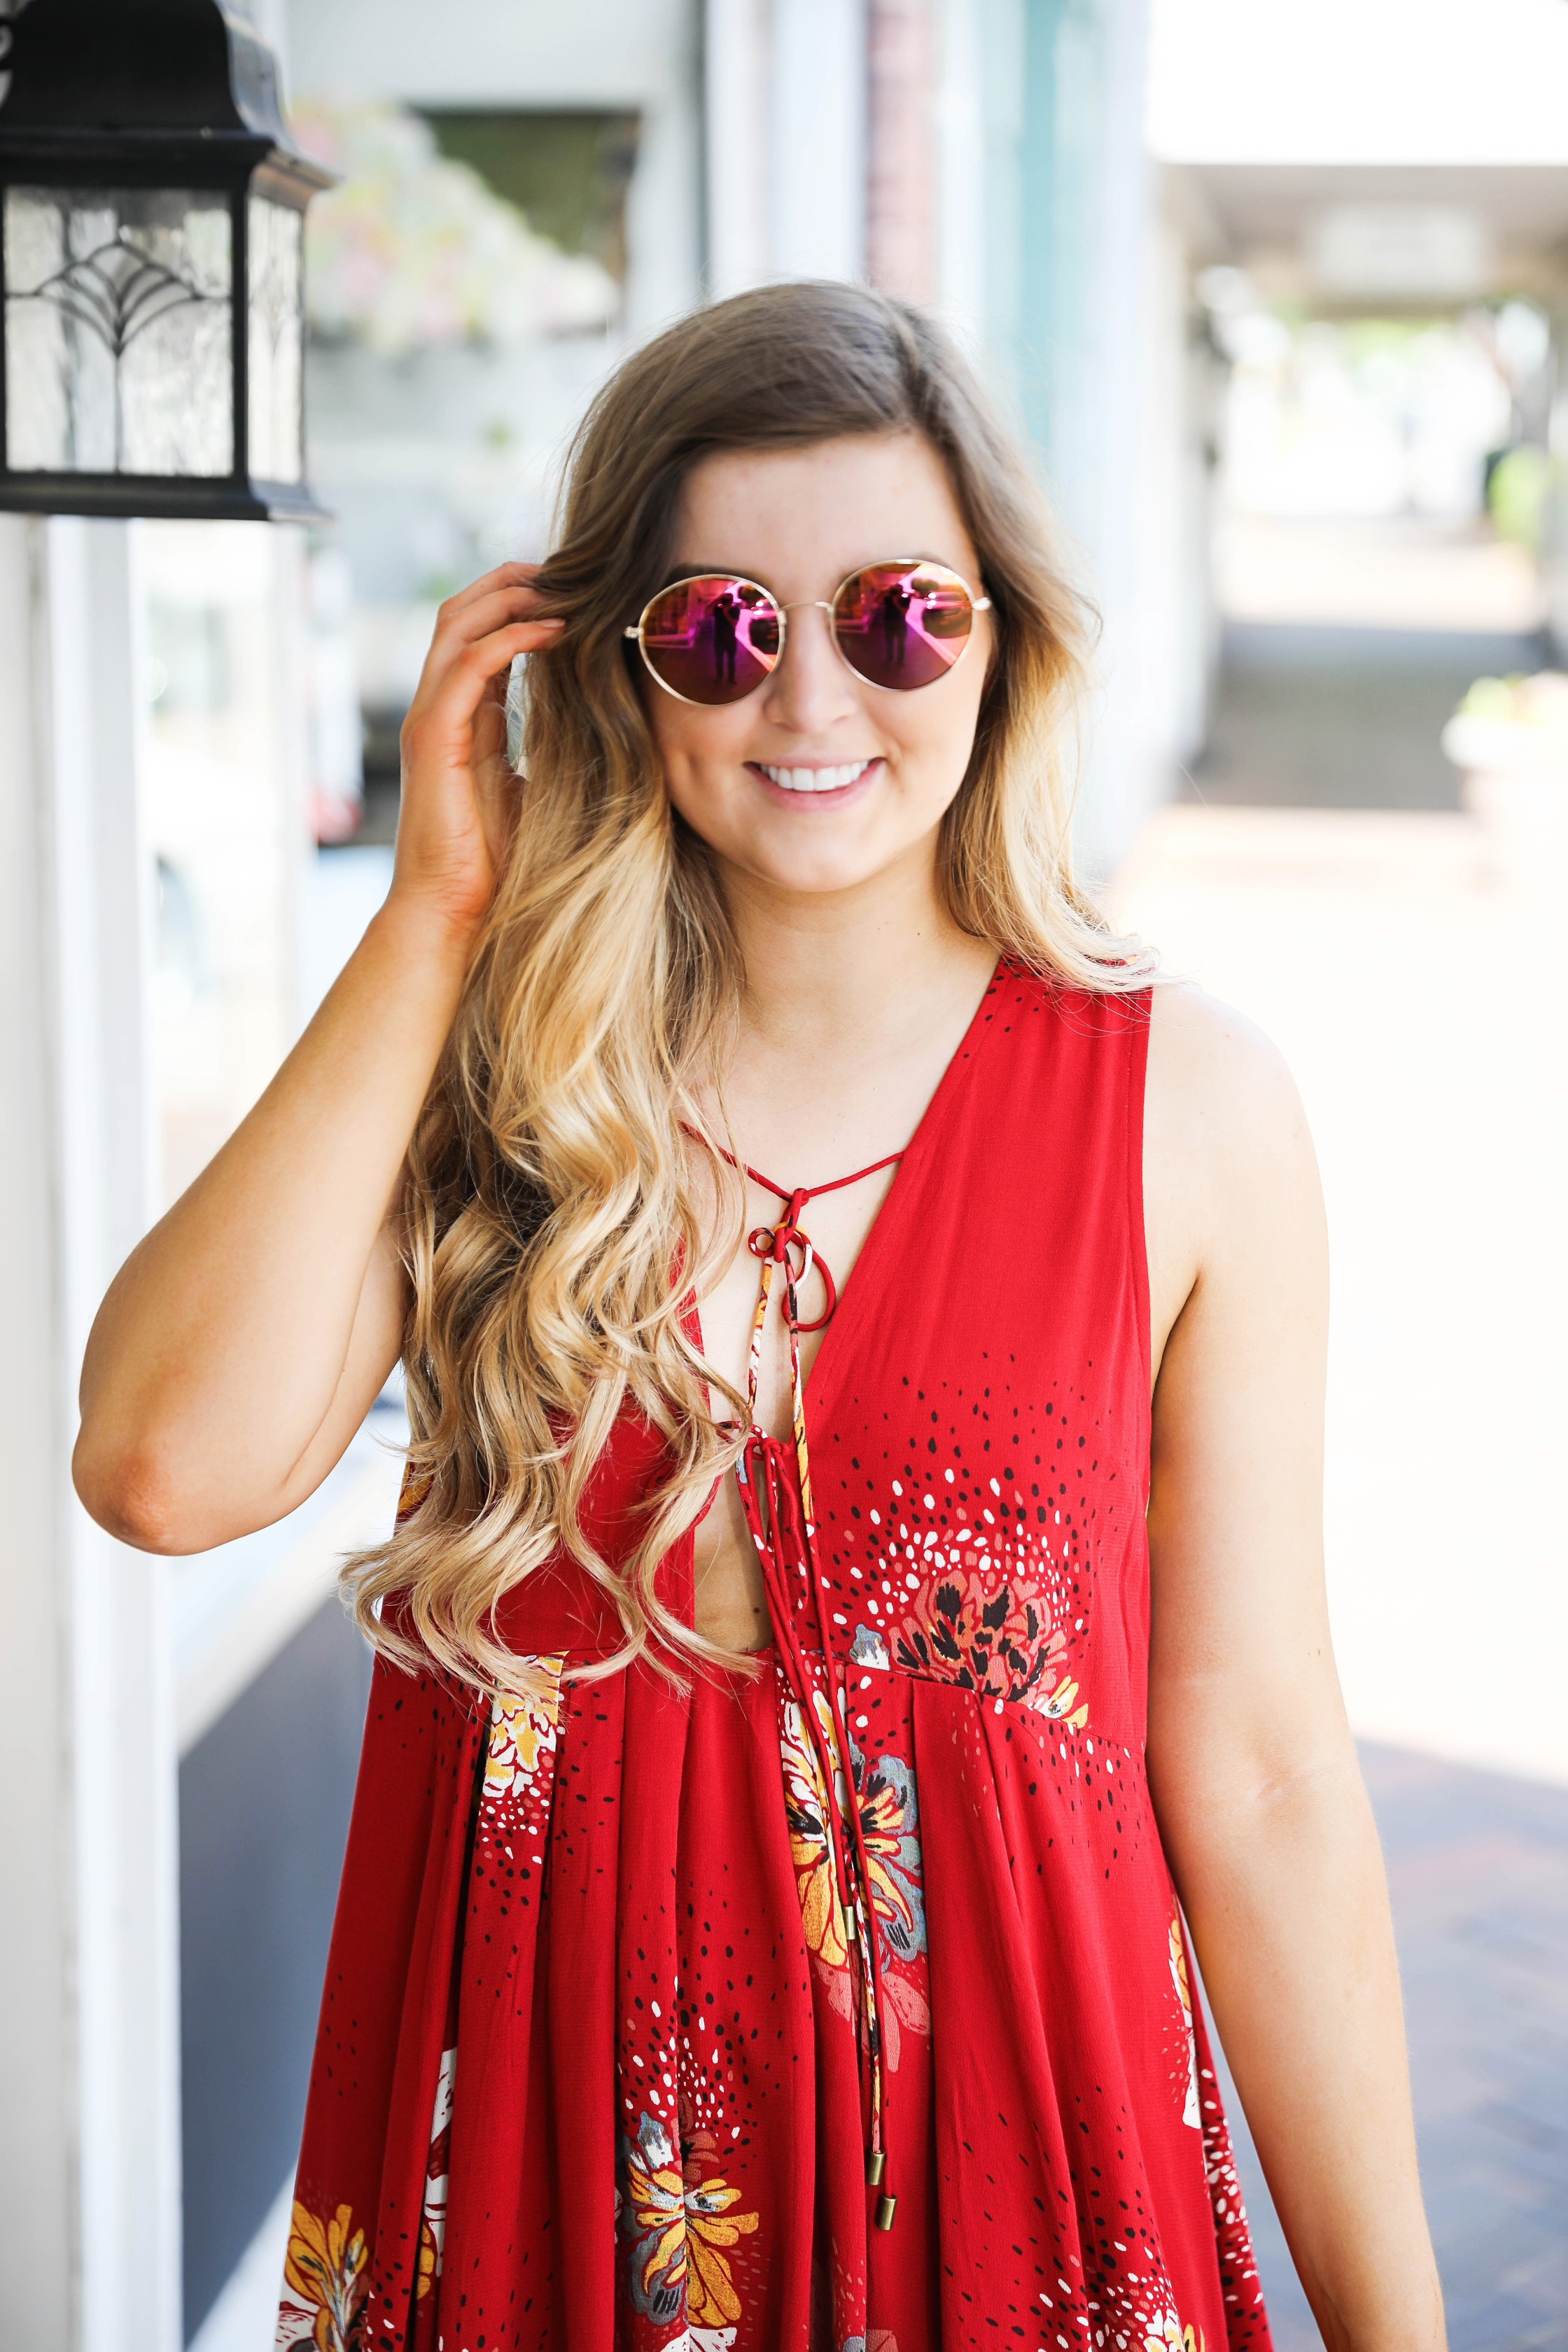 Free People Coachella Inspired Dress with Fun $12 Sunglasses! Cute spring fashion! by Lauren Lindmark on Daily Dose of Charm dailydoseofcharm.com